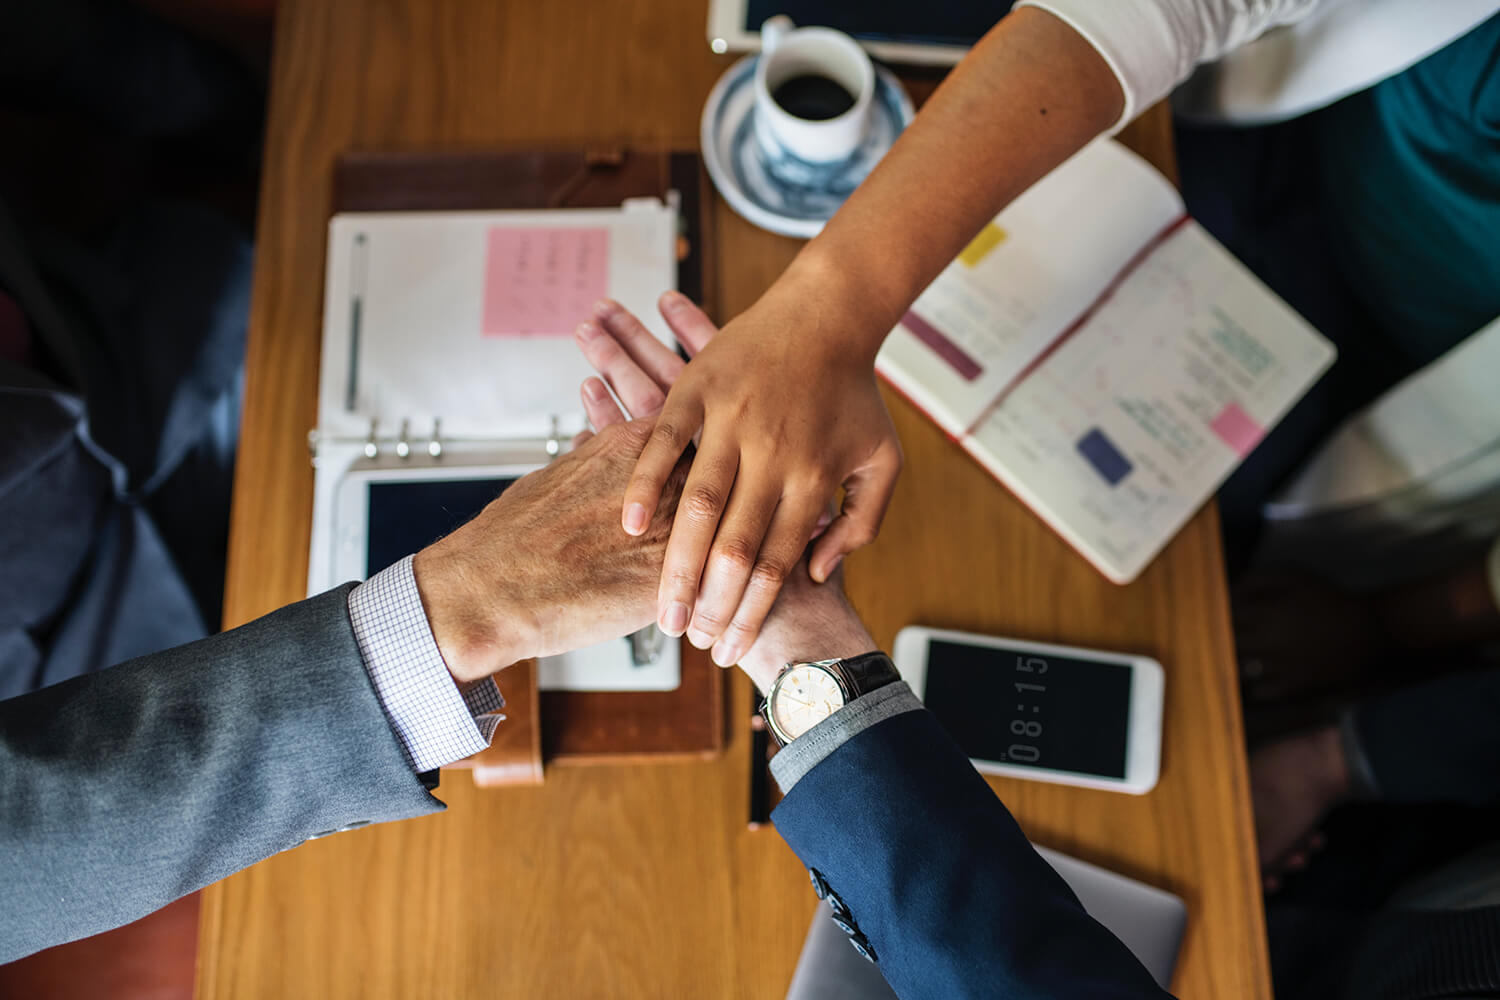 Developing effective teams - We work with teams in a variety of settings to build collaboration and trust to create high-performing and effective teams.Find out more